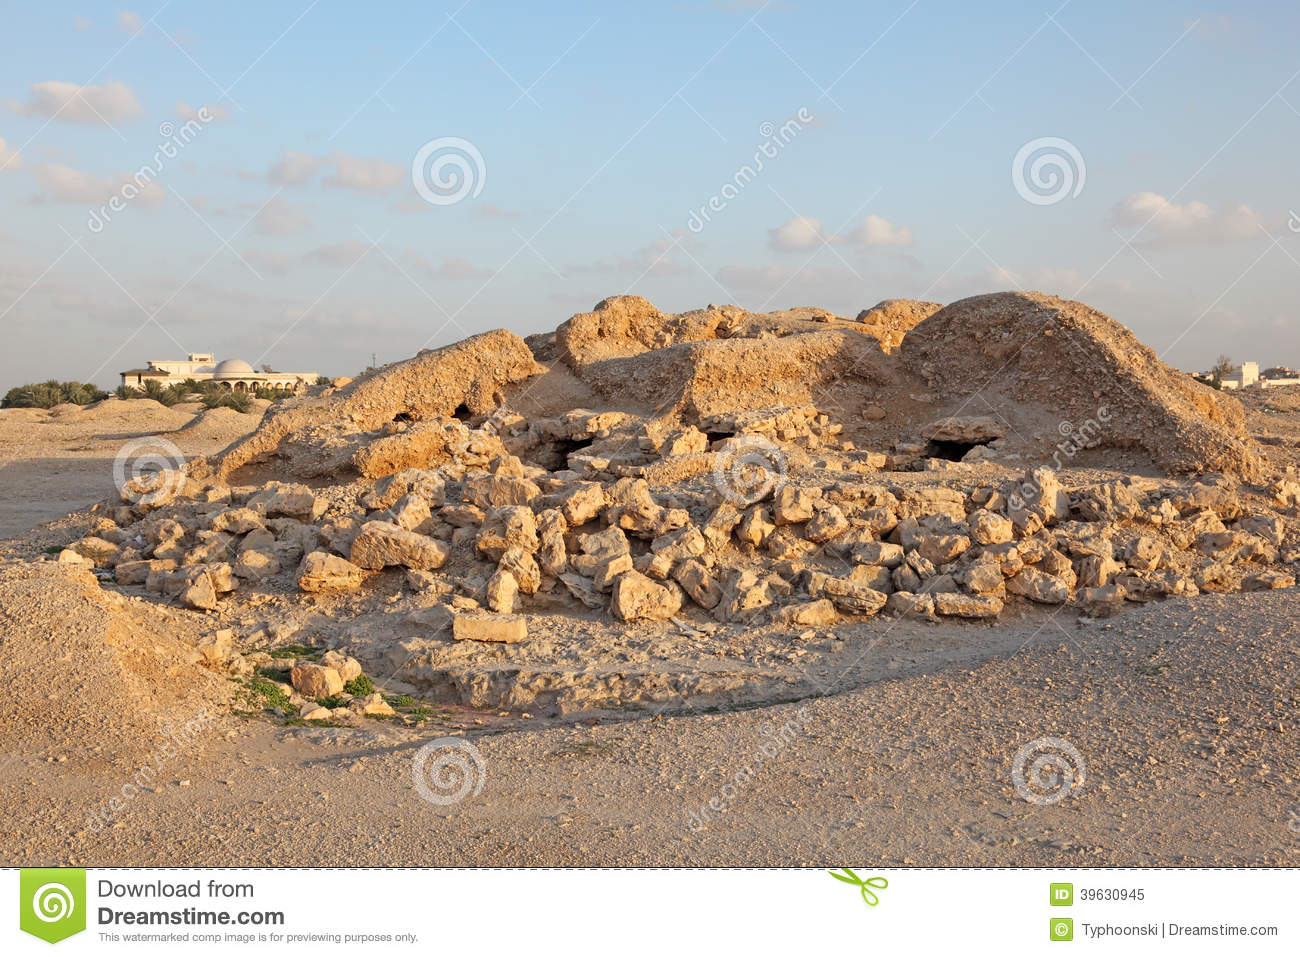 A'Ali Burial Mounds A'Ali, Dilmun Burial Mounds In A'ali. Bahrain Stock Photo - Image: 39630945